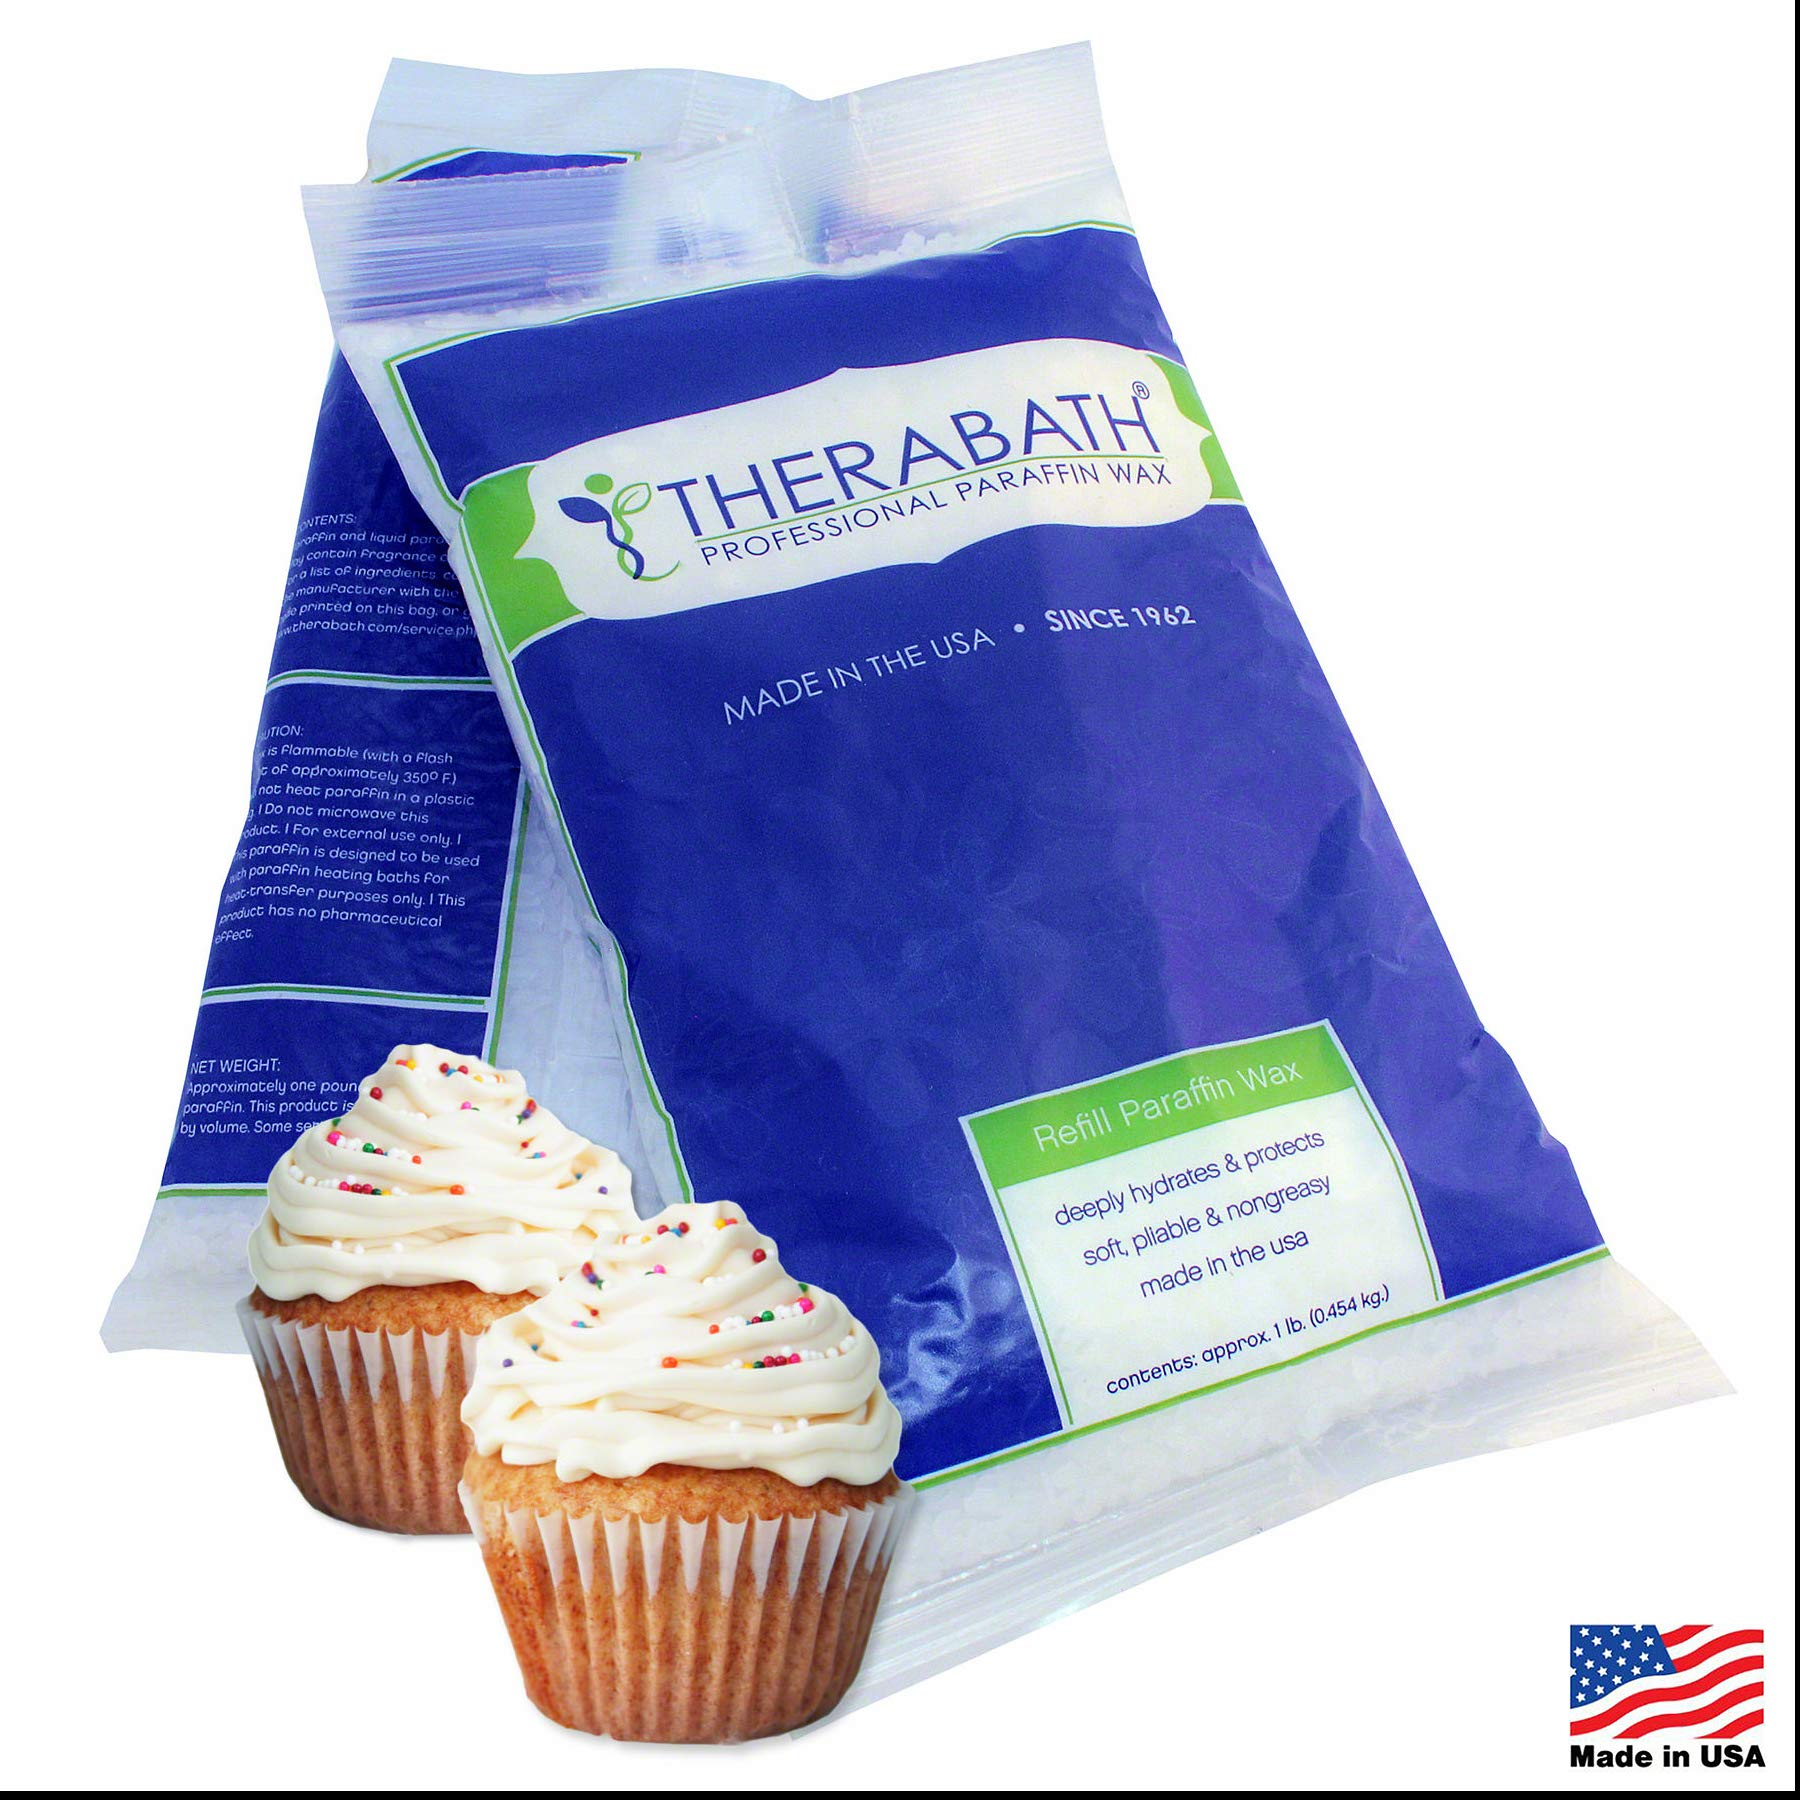 Therabath Paraffin Wax Refill - Use To Relieve Arthitis Pain and Stiff Muscles - Deeply Hydrates and Protects - 6 lbs (Vanilla Cupcake) by Therabath